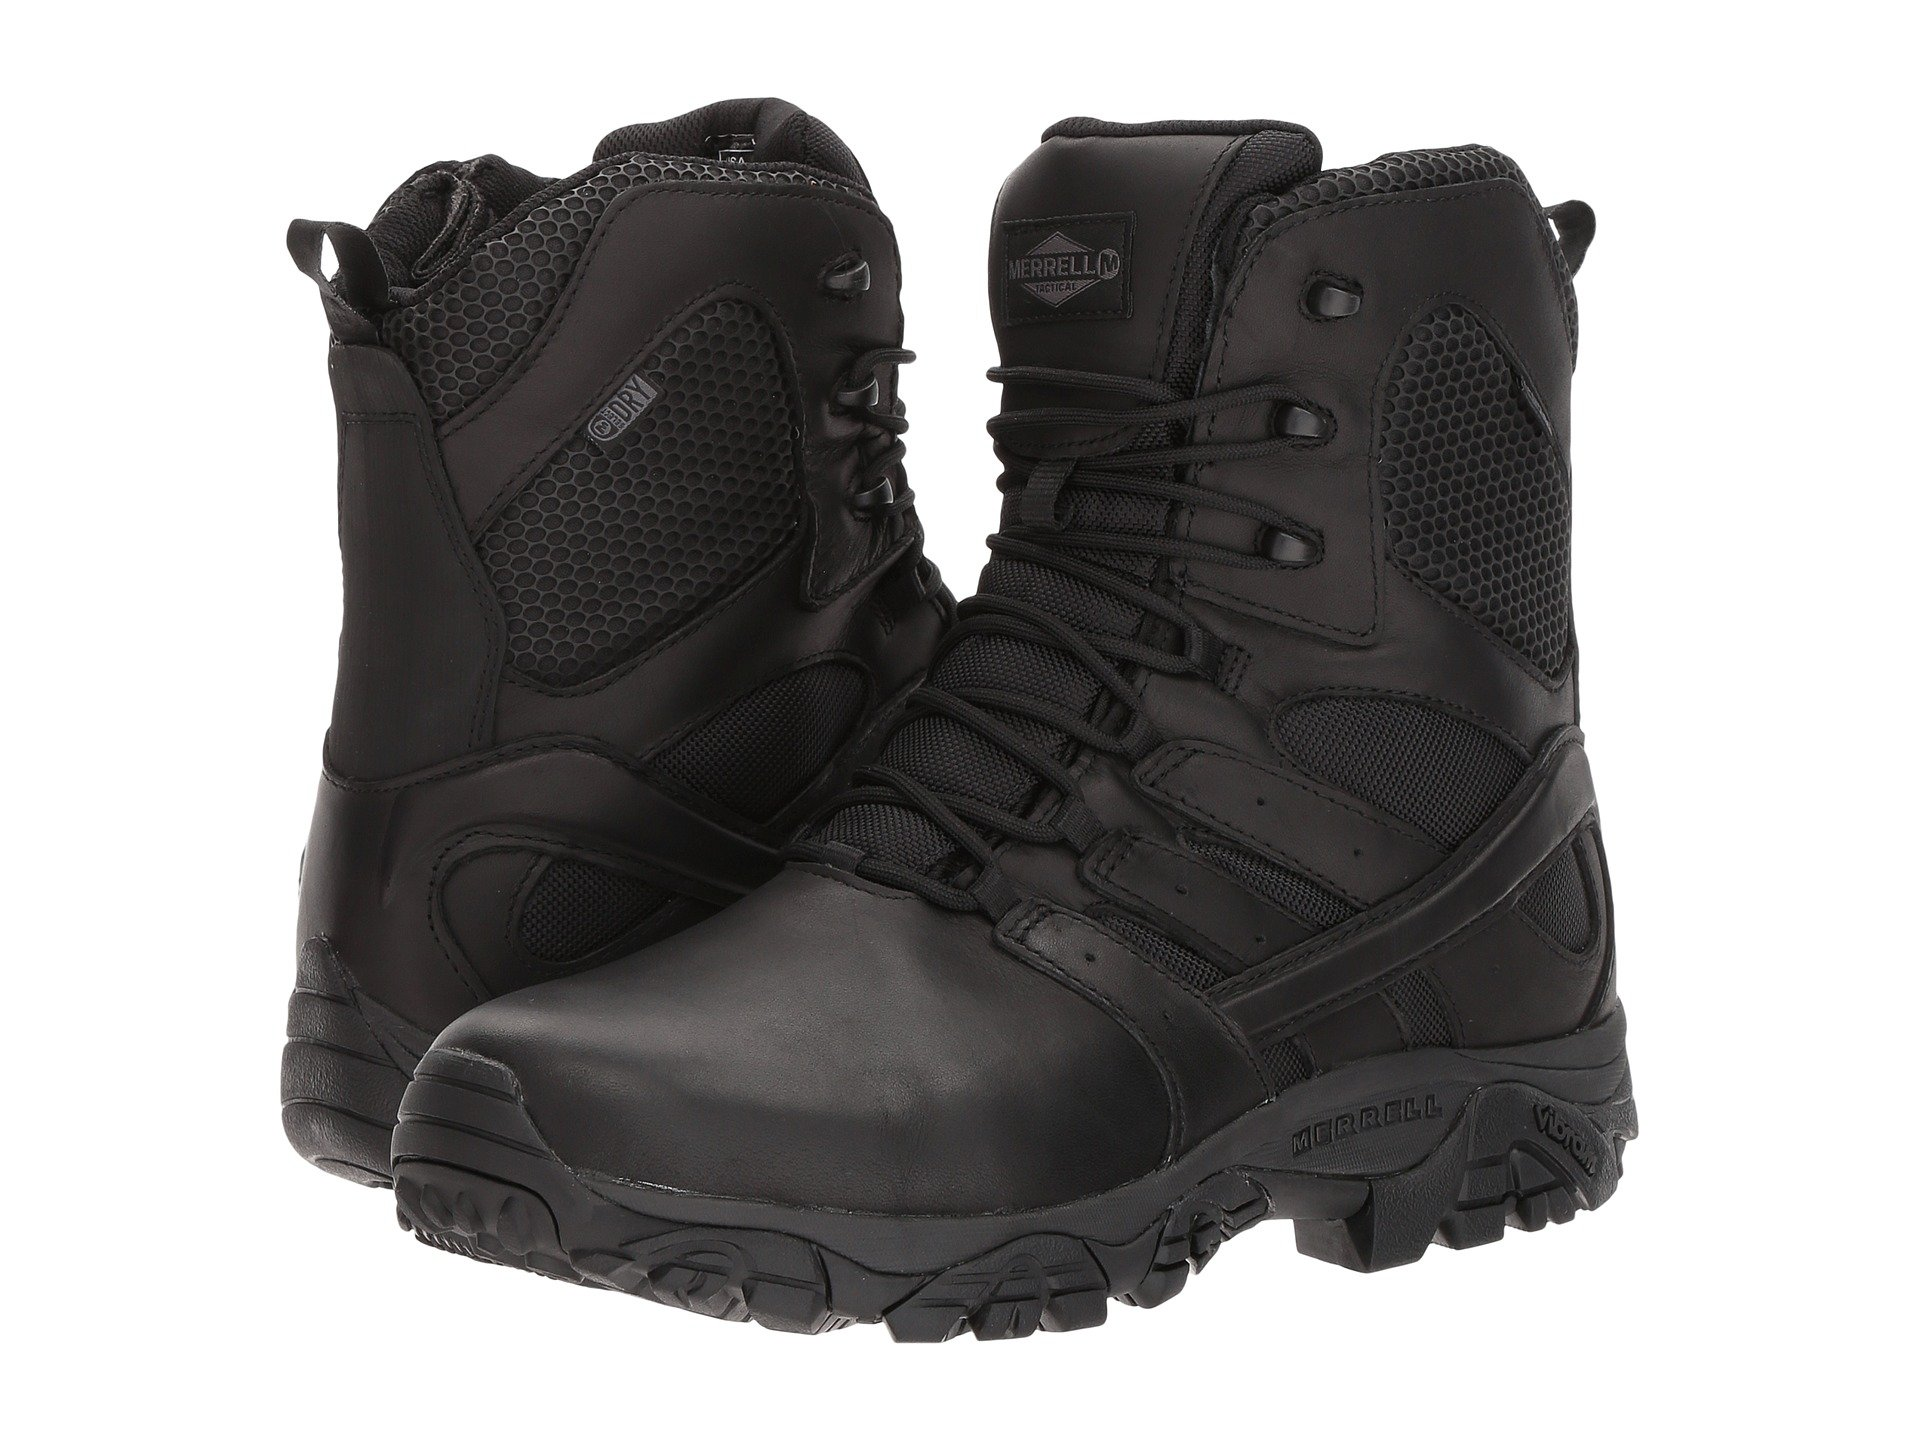 various colors attractive price soft and light Men's Merrell Work Boots + FREE SHIPPING | Shoes | Zappos.com